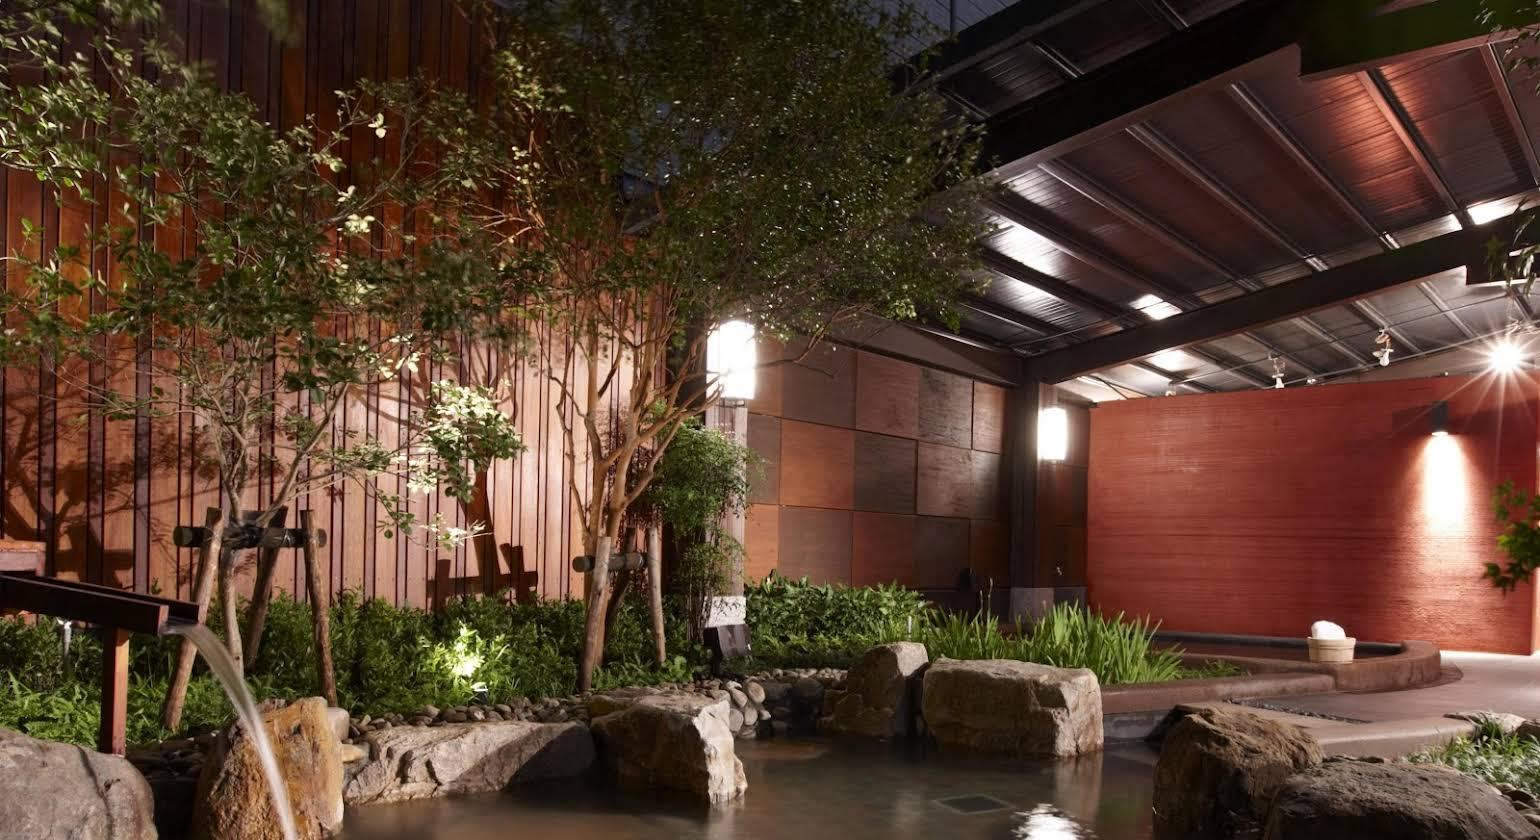 City Suites-Jiaoxi Maple Leaves Hot Spring Hotel